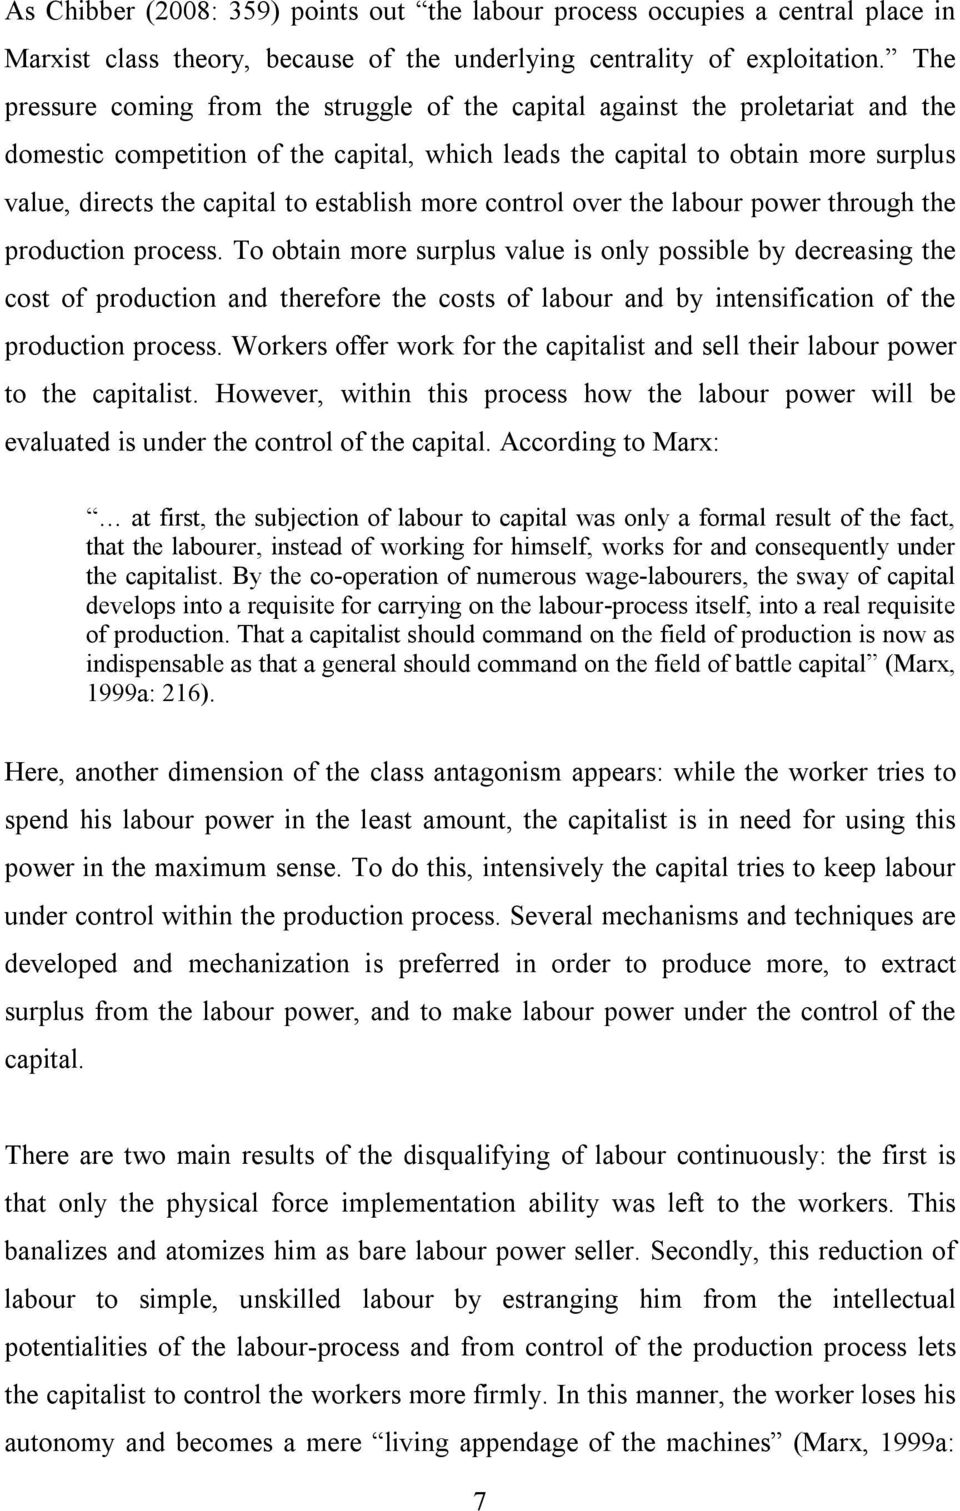 establish more control over the labour power through the production process.